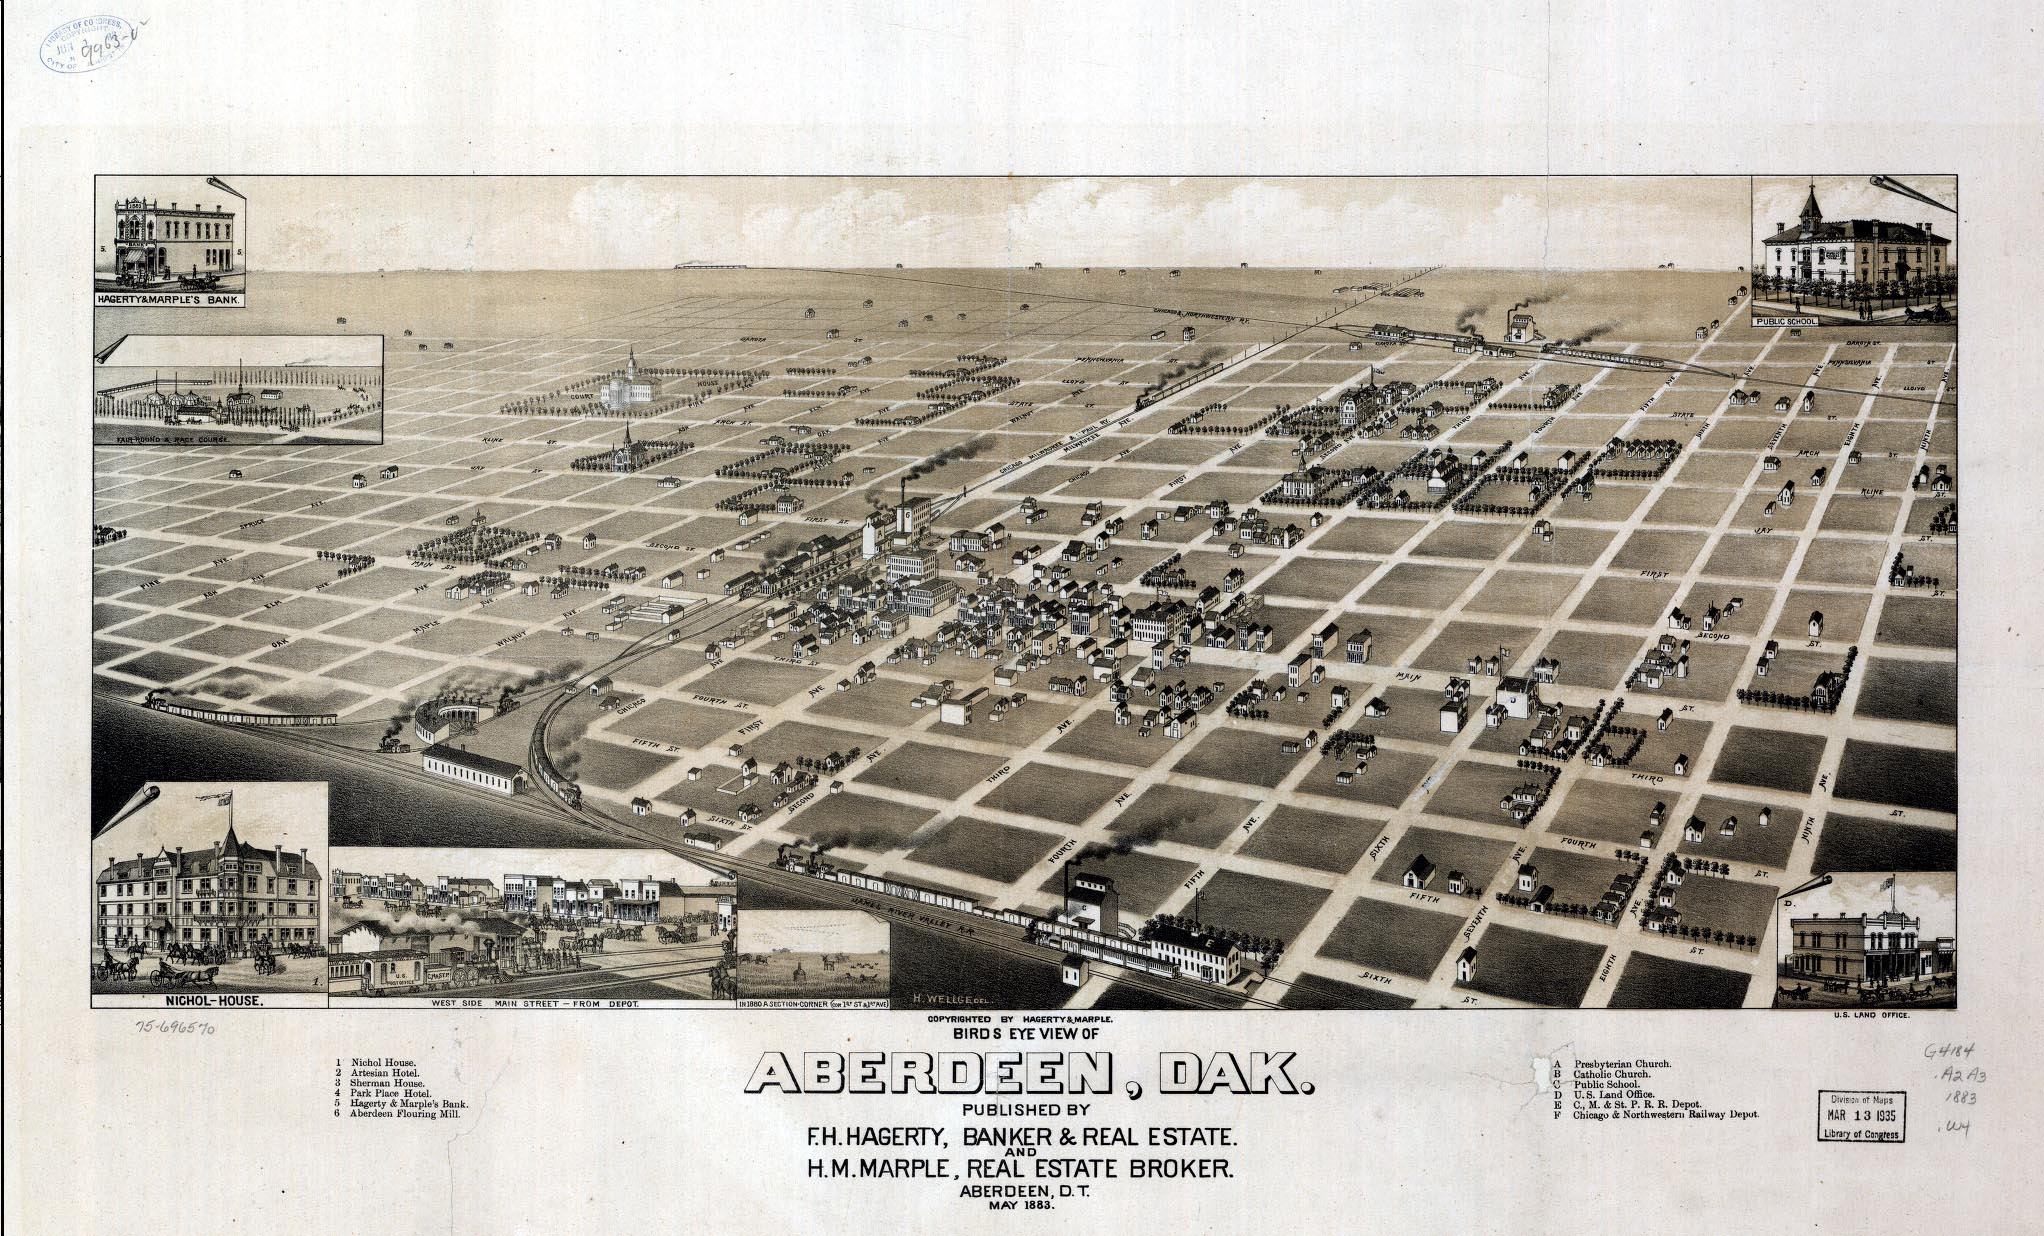 This 1883 map of Aberdeen shows what would become the Hagerty & Lloyd district on the right bottom corner. F.H. Hagerty's name can be seen below the map.